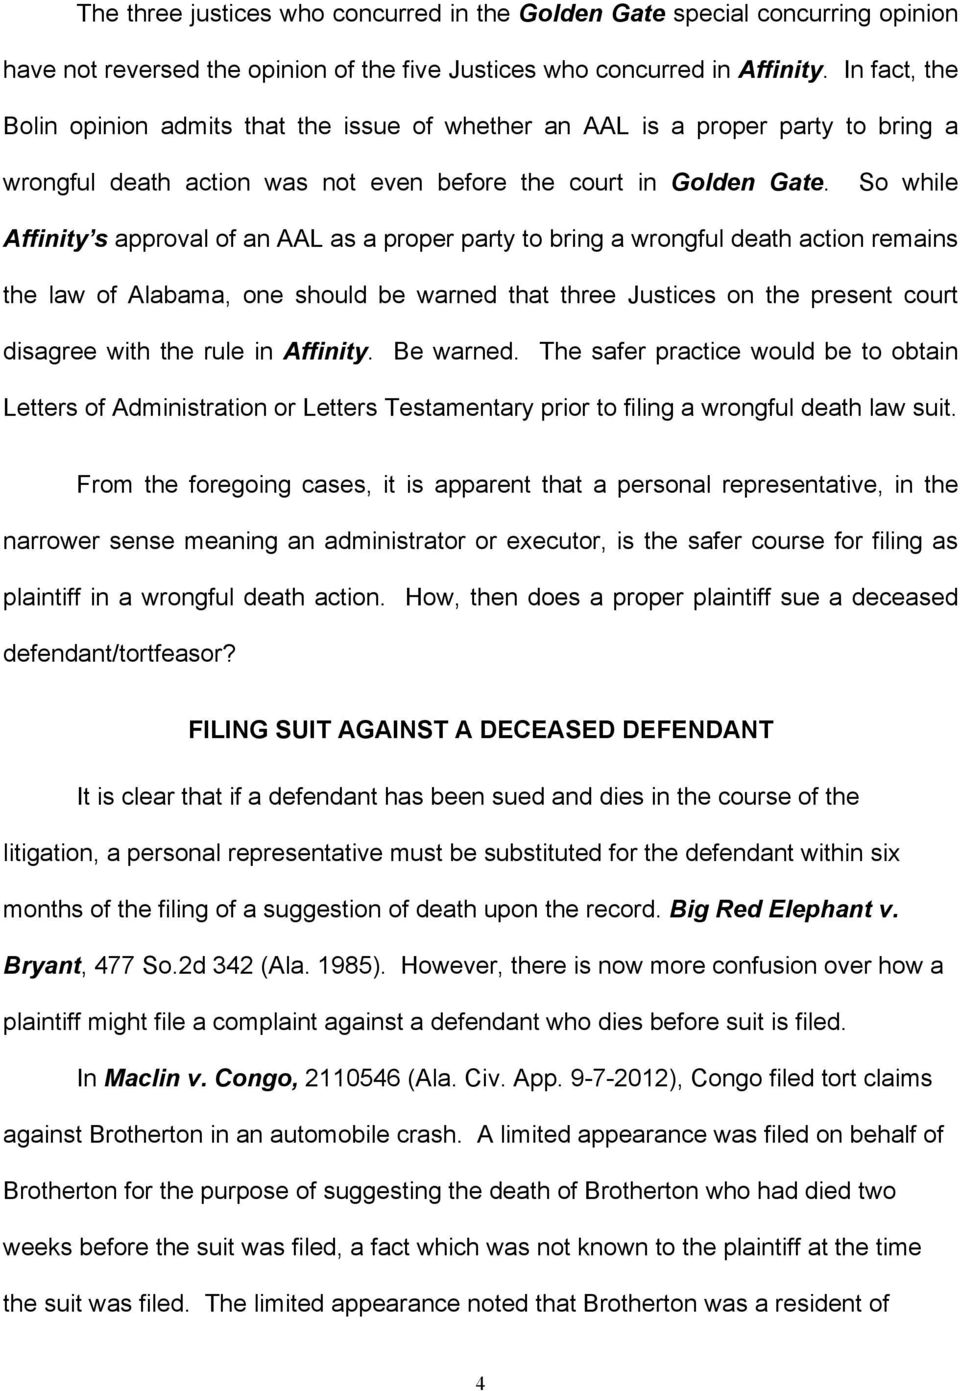 So while Affinity s approval of an AAL as a proper party to bring a wrongful death action remains the law of Alabama, one should be warned that three Justices on the present court disagree with the